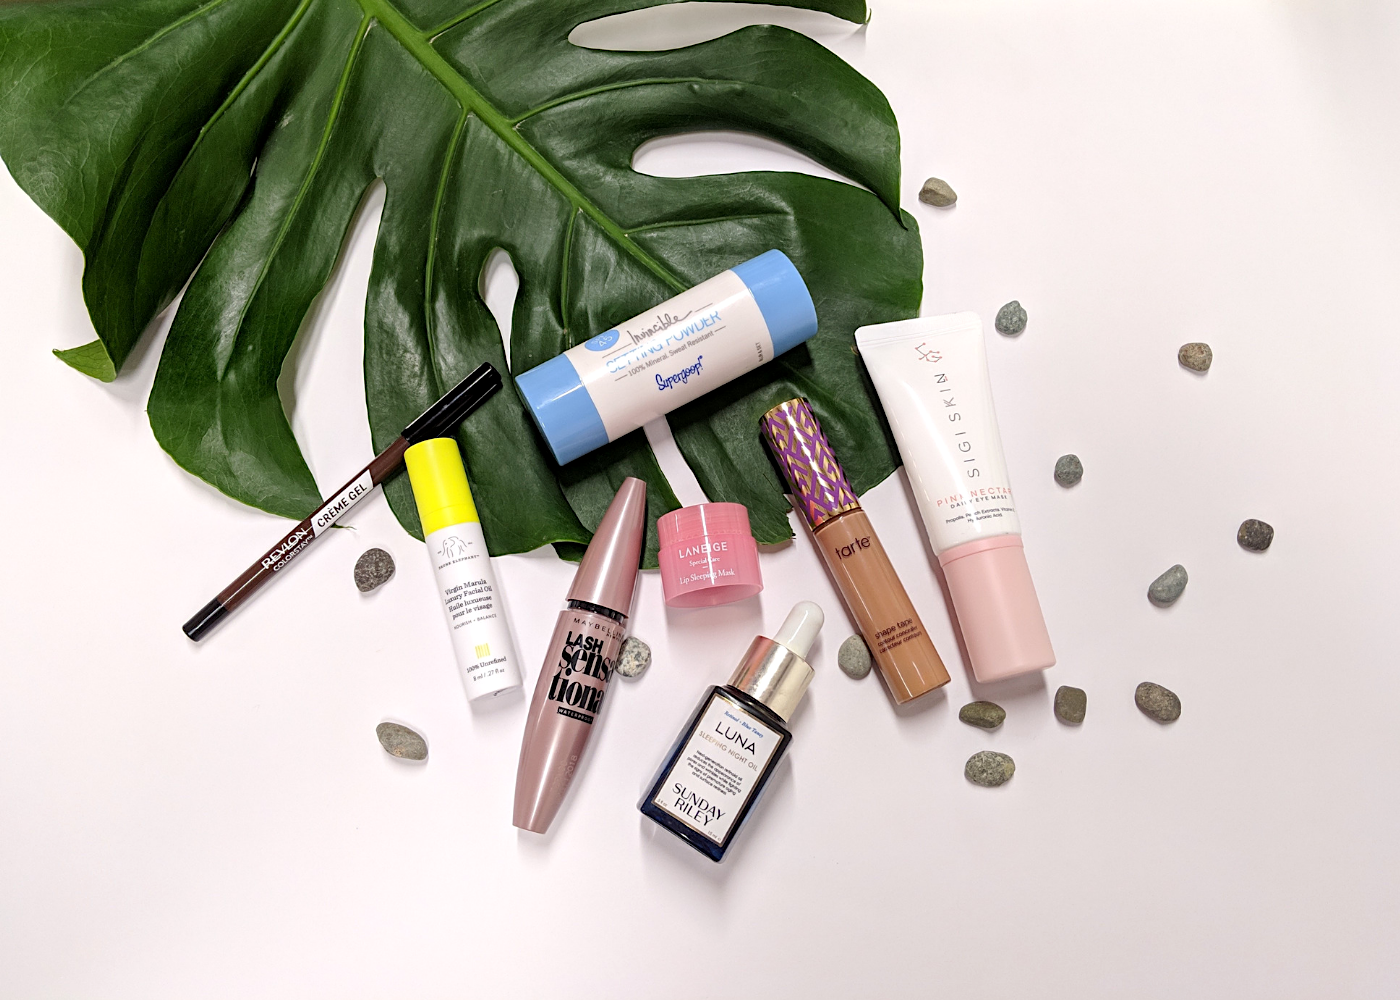 March beauty reviews